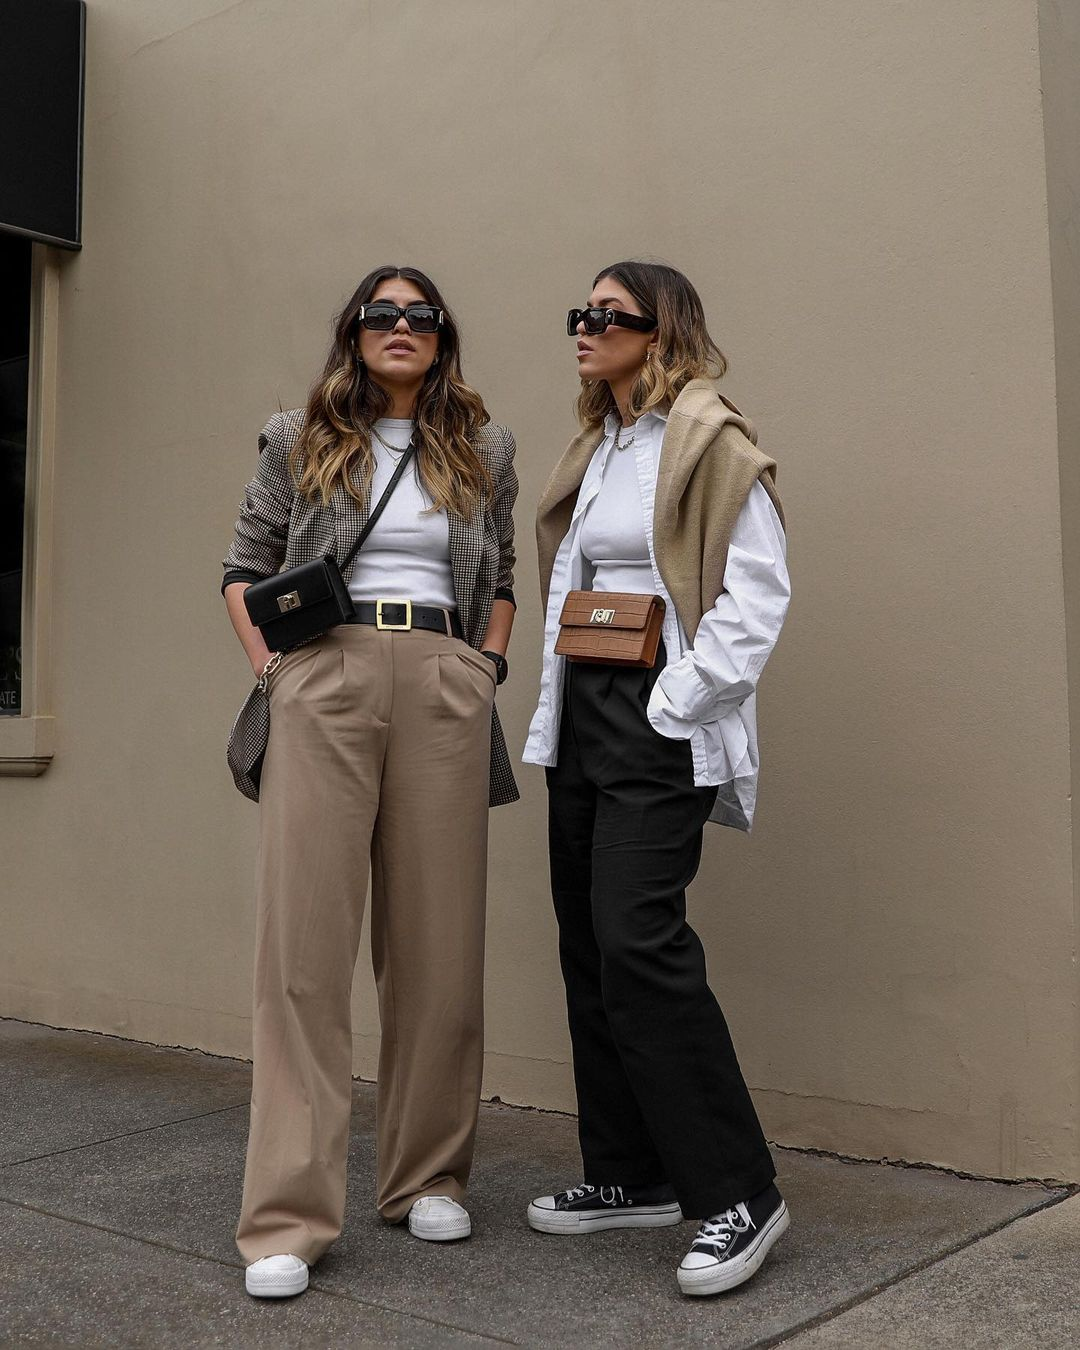 These Outfits Are Packed with All the Neutral Basics You Need — @twiceblessed Instagram outfit ideas with blazers, sweaters, and sneakers